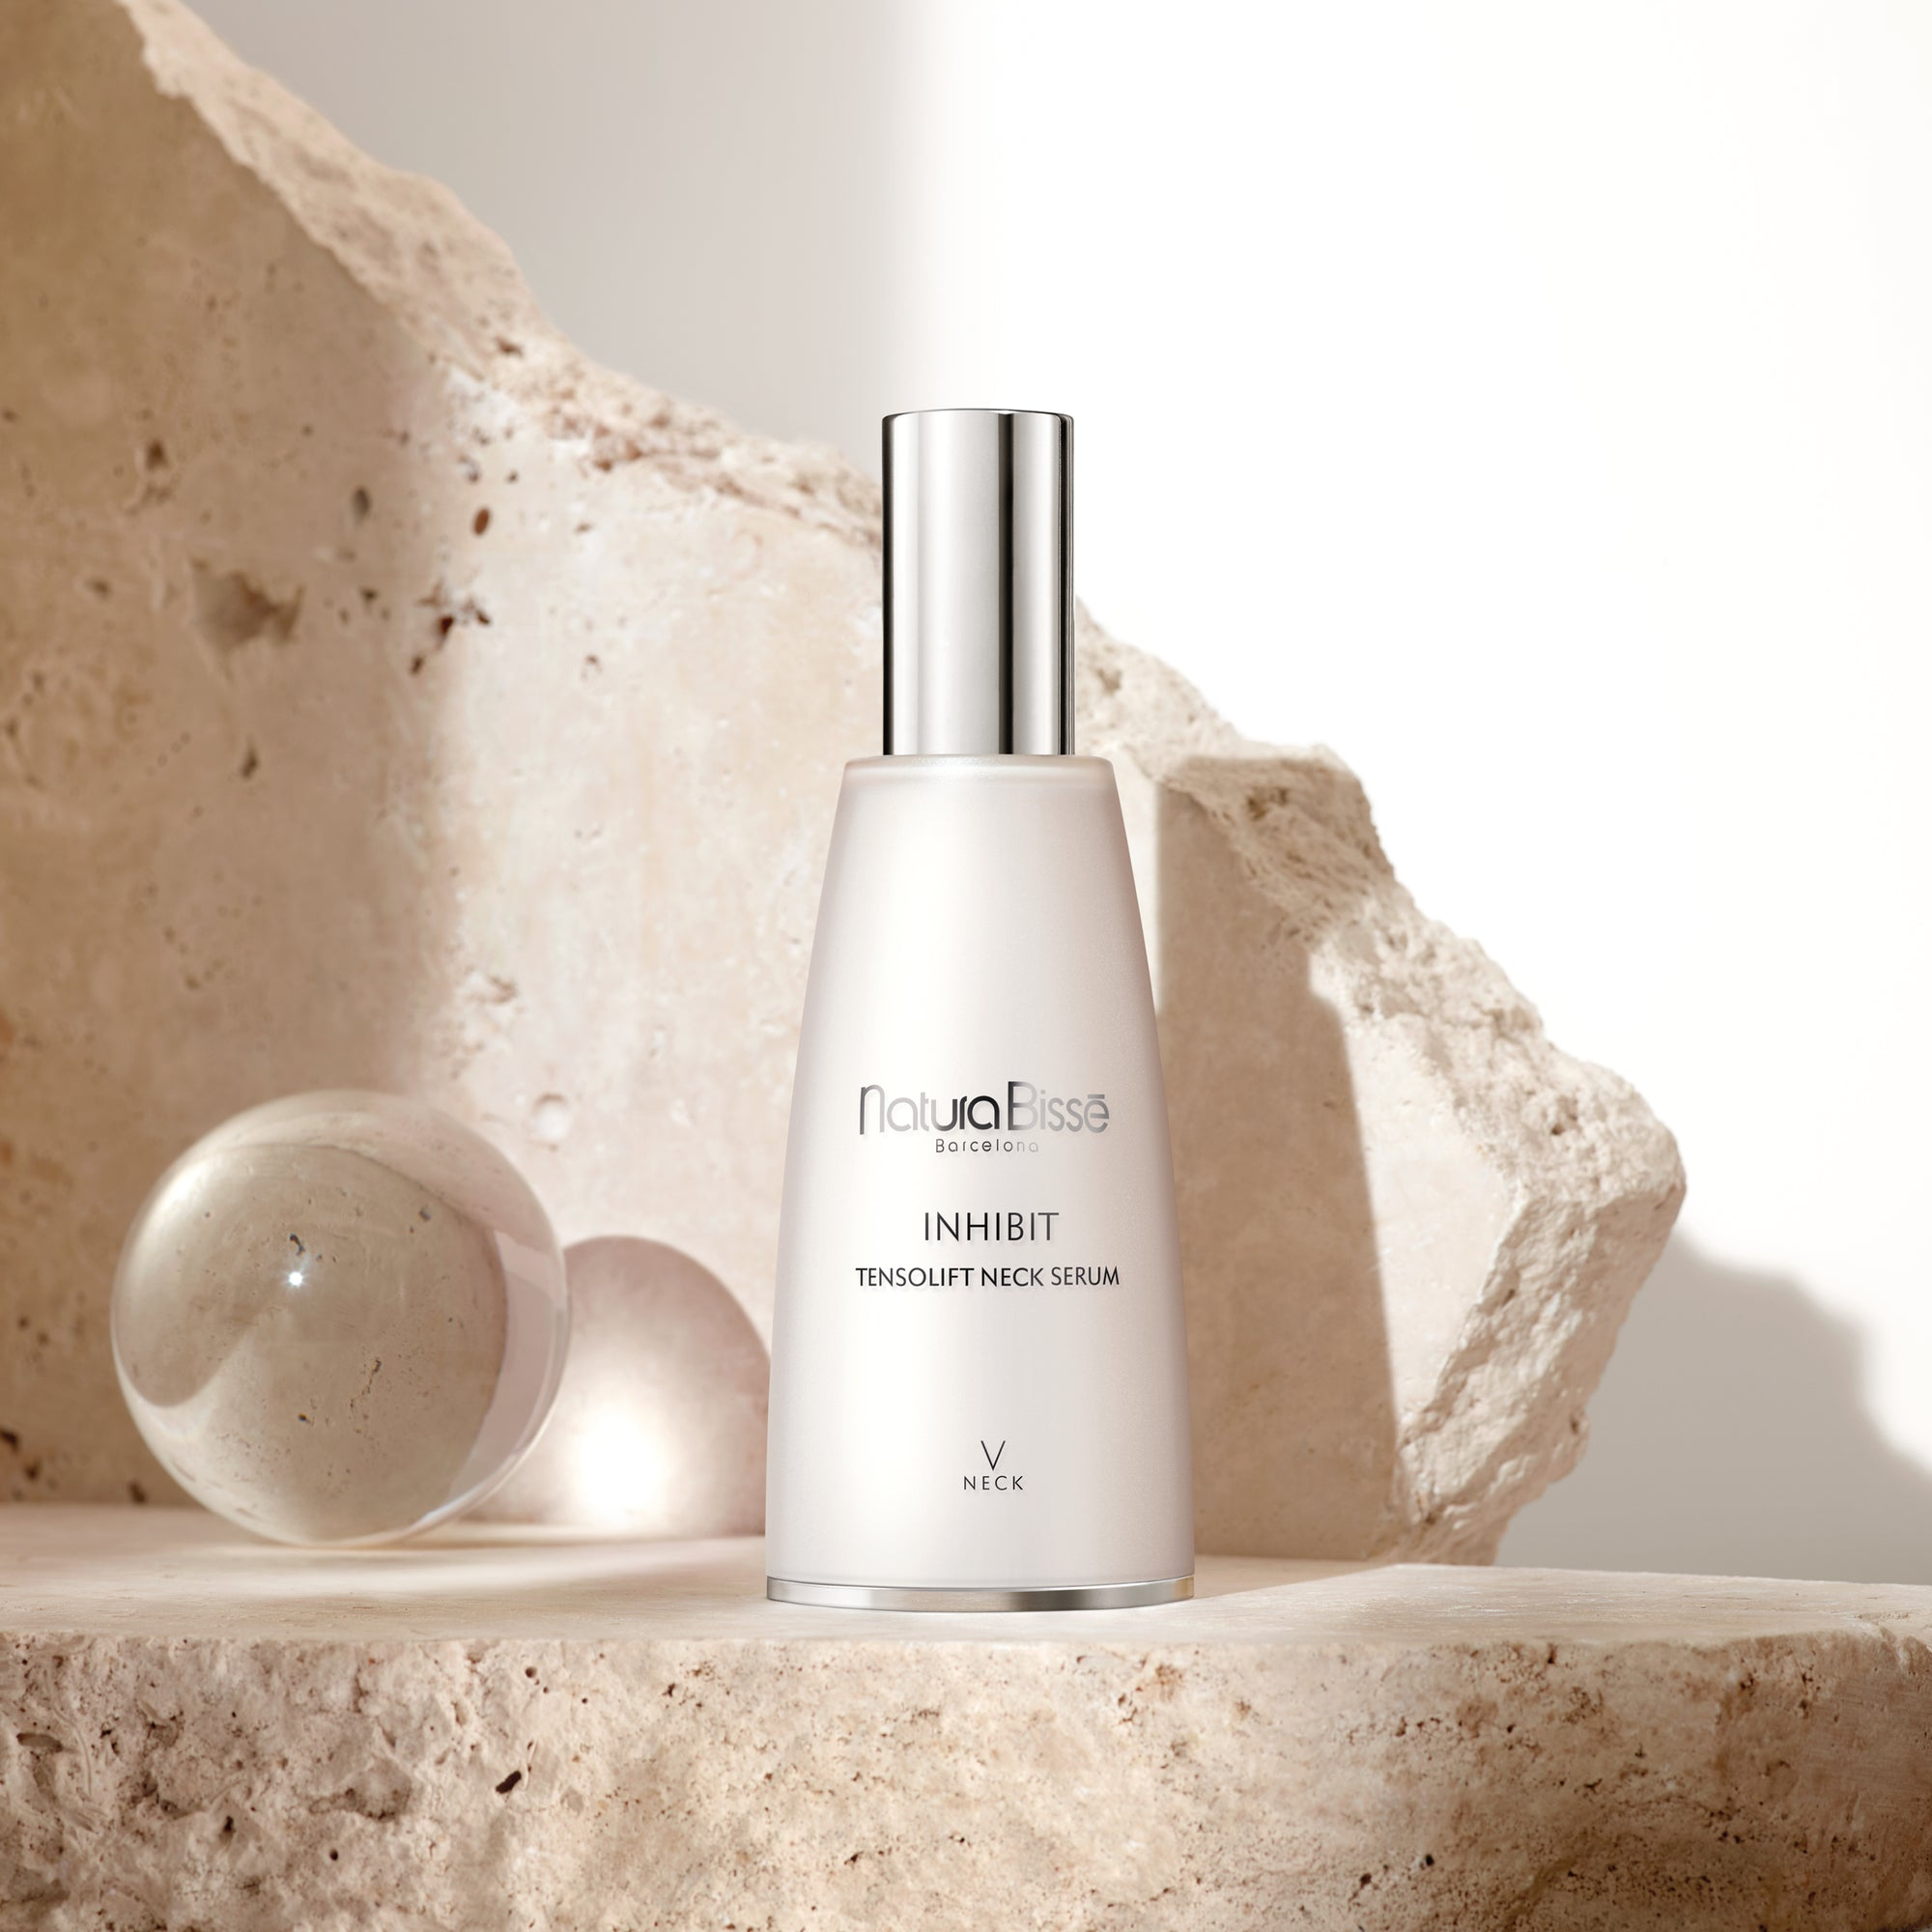 Natura Bissé - Inhibit Tensolift Neck Serum